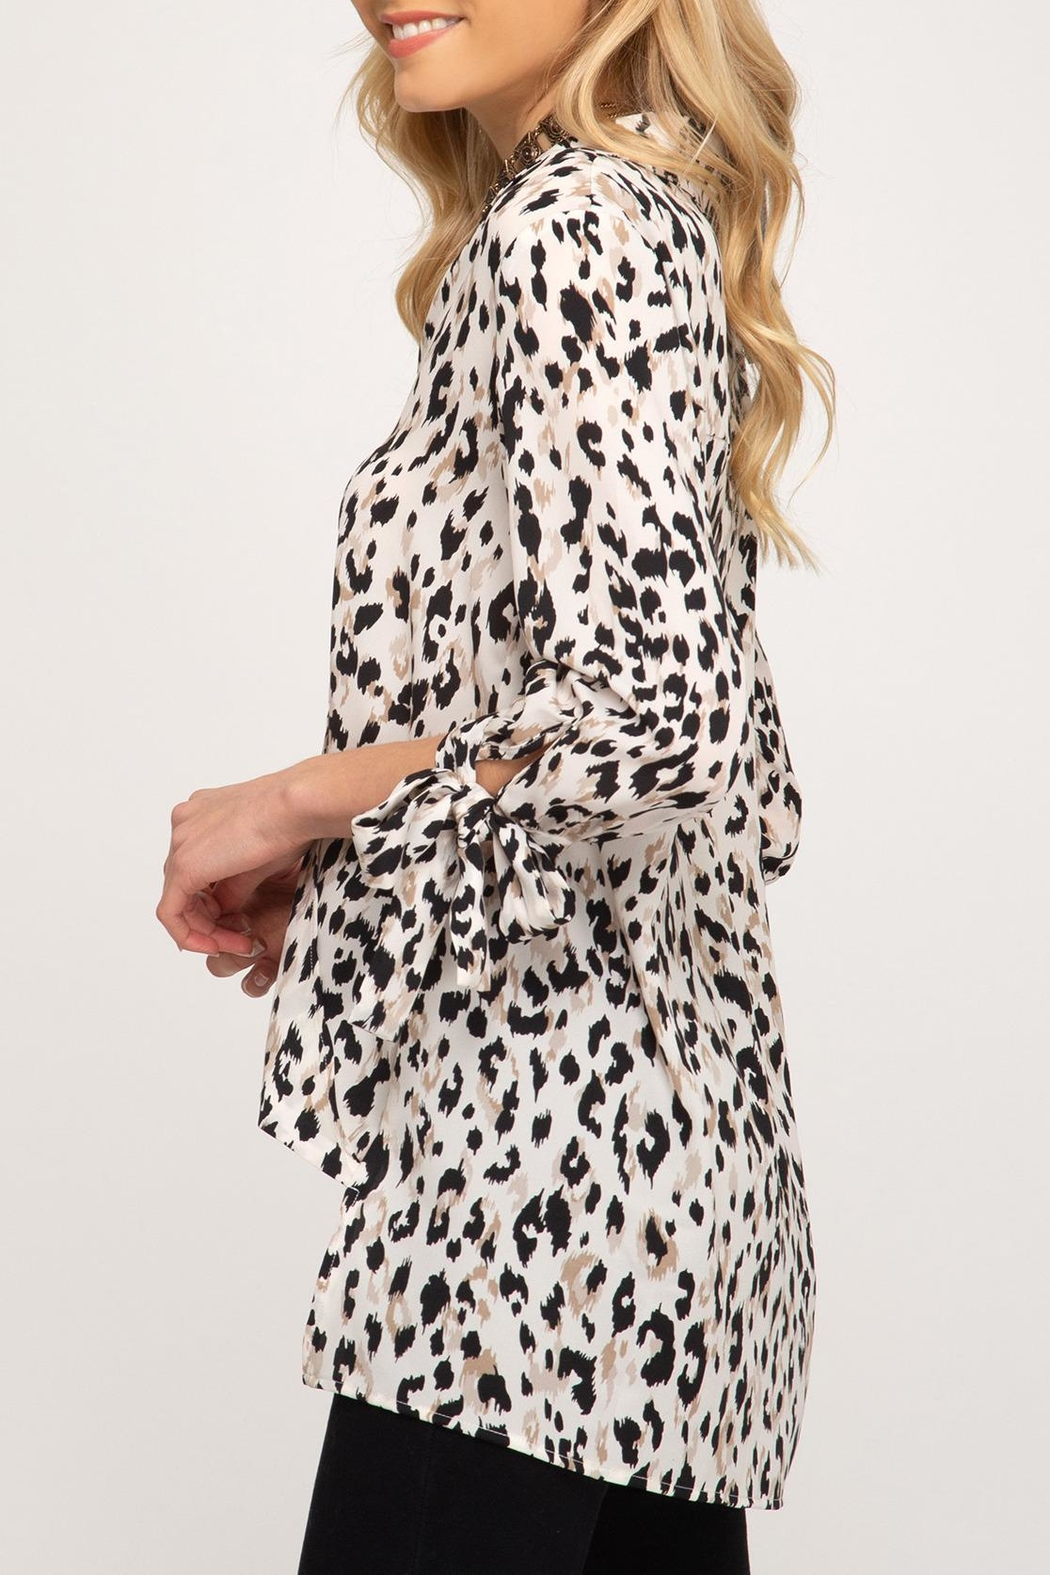 She + Sky Leopard Sleeve-Tie Top - Front Full Image